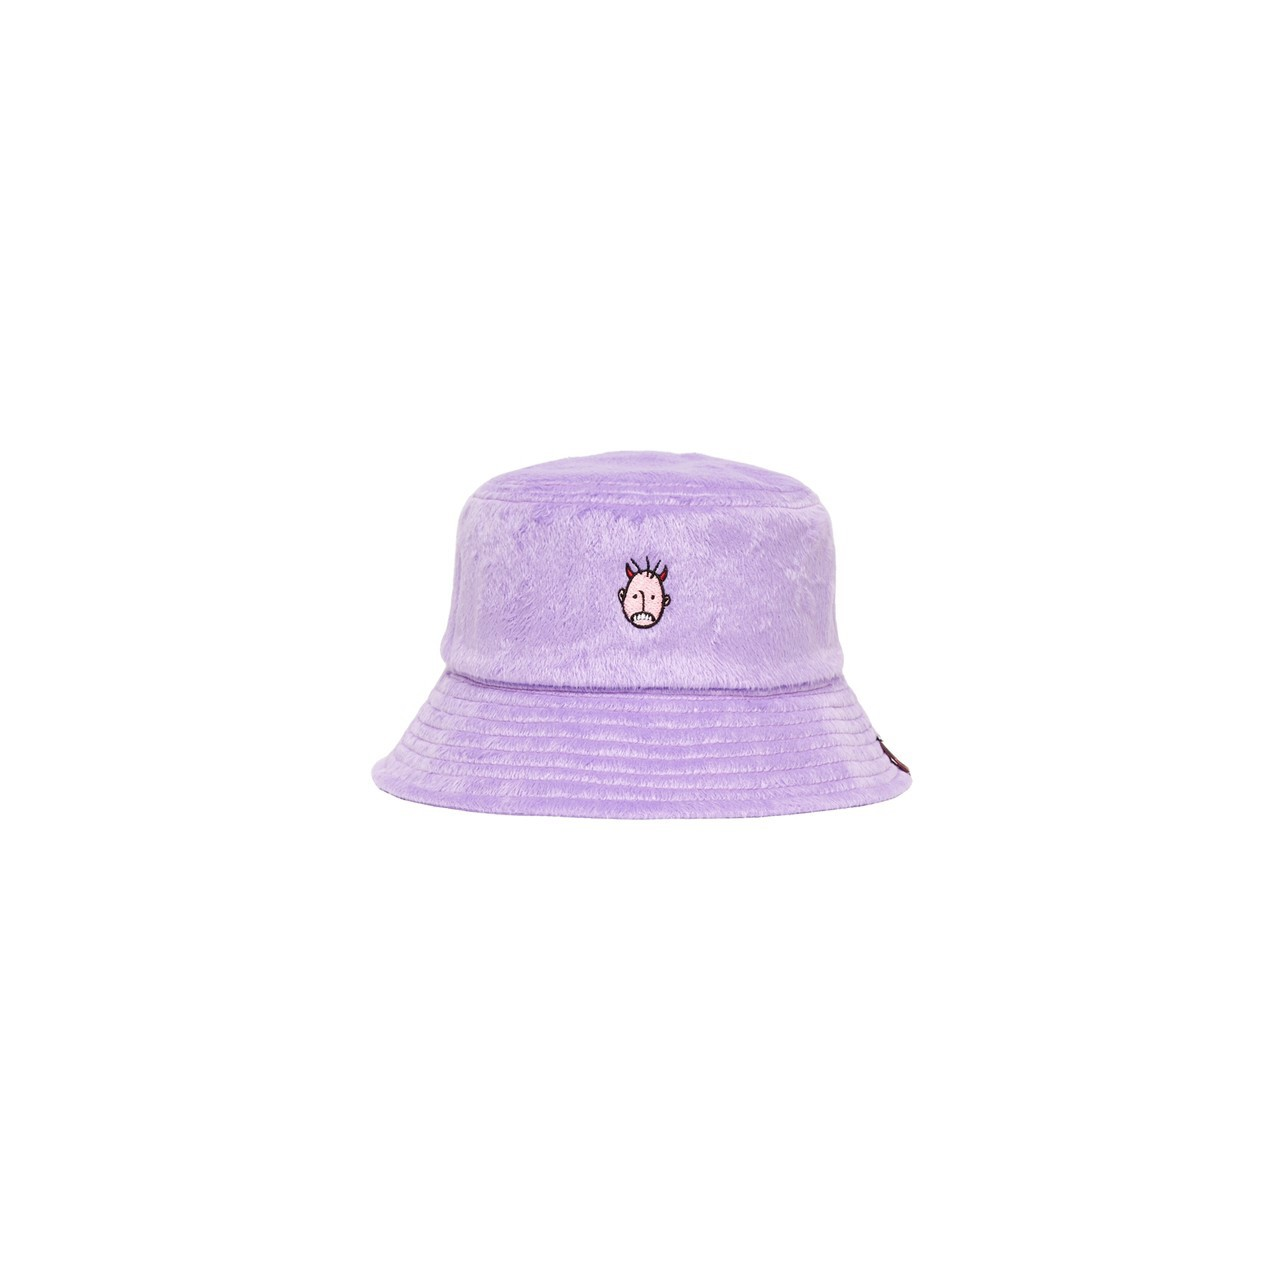 UXRY CLUB IMOTO LAVENDER BUCKET HAT PURPLE